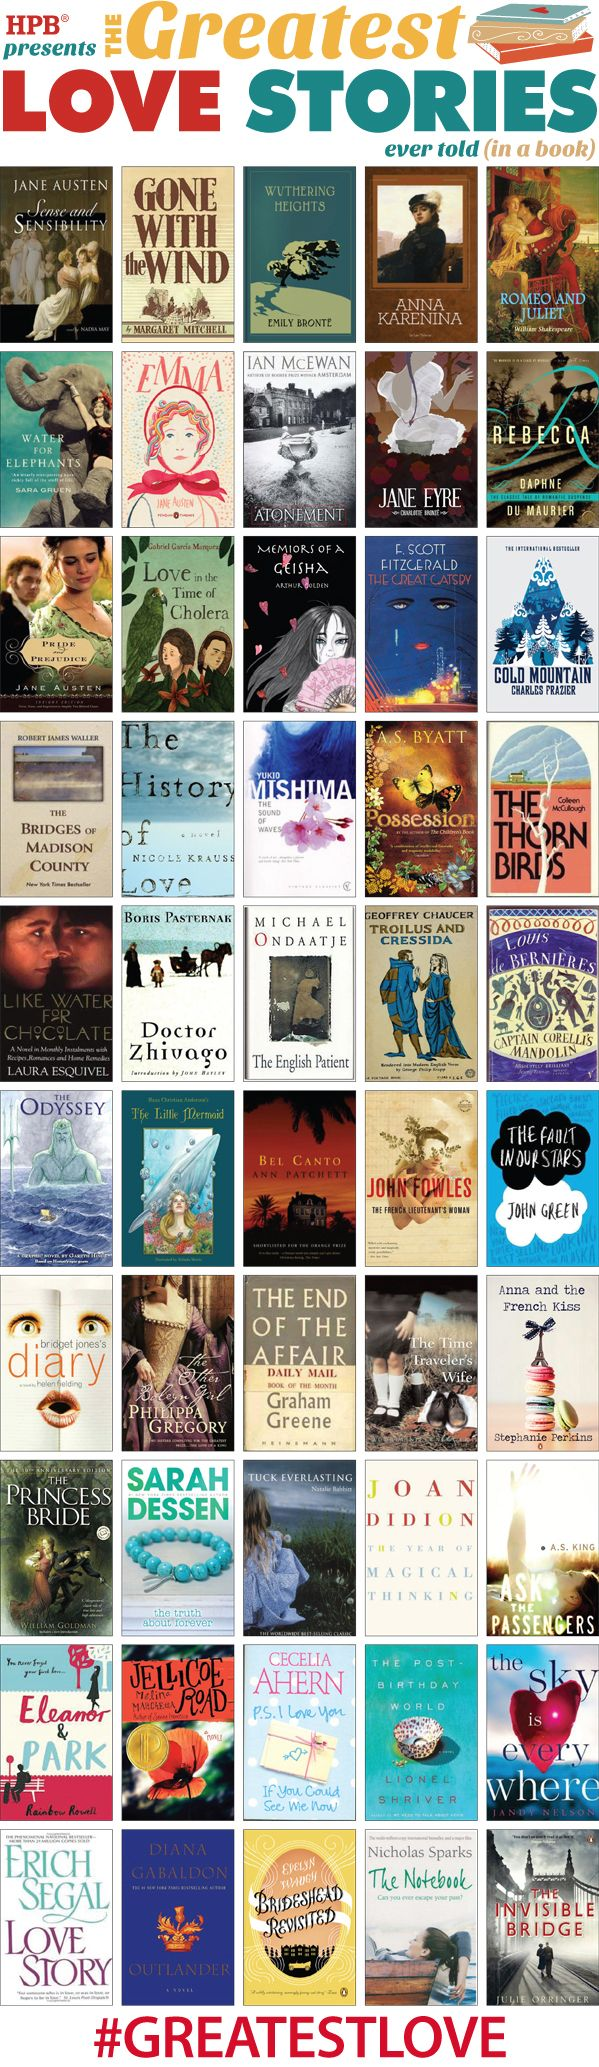 50 Greatest Love Stories Ever Told (in a book) - Half Price Books Blog - HPB.com